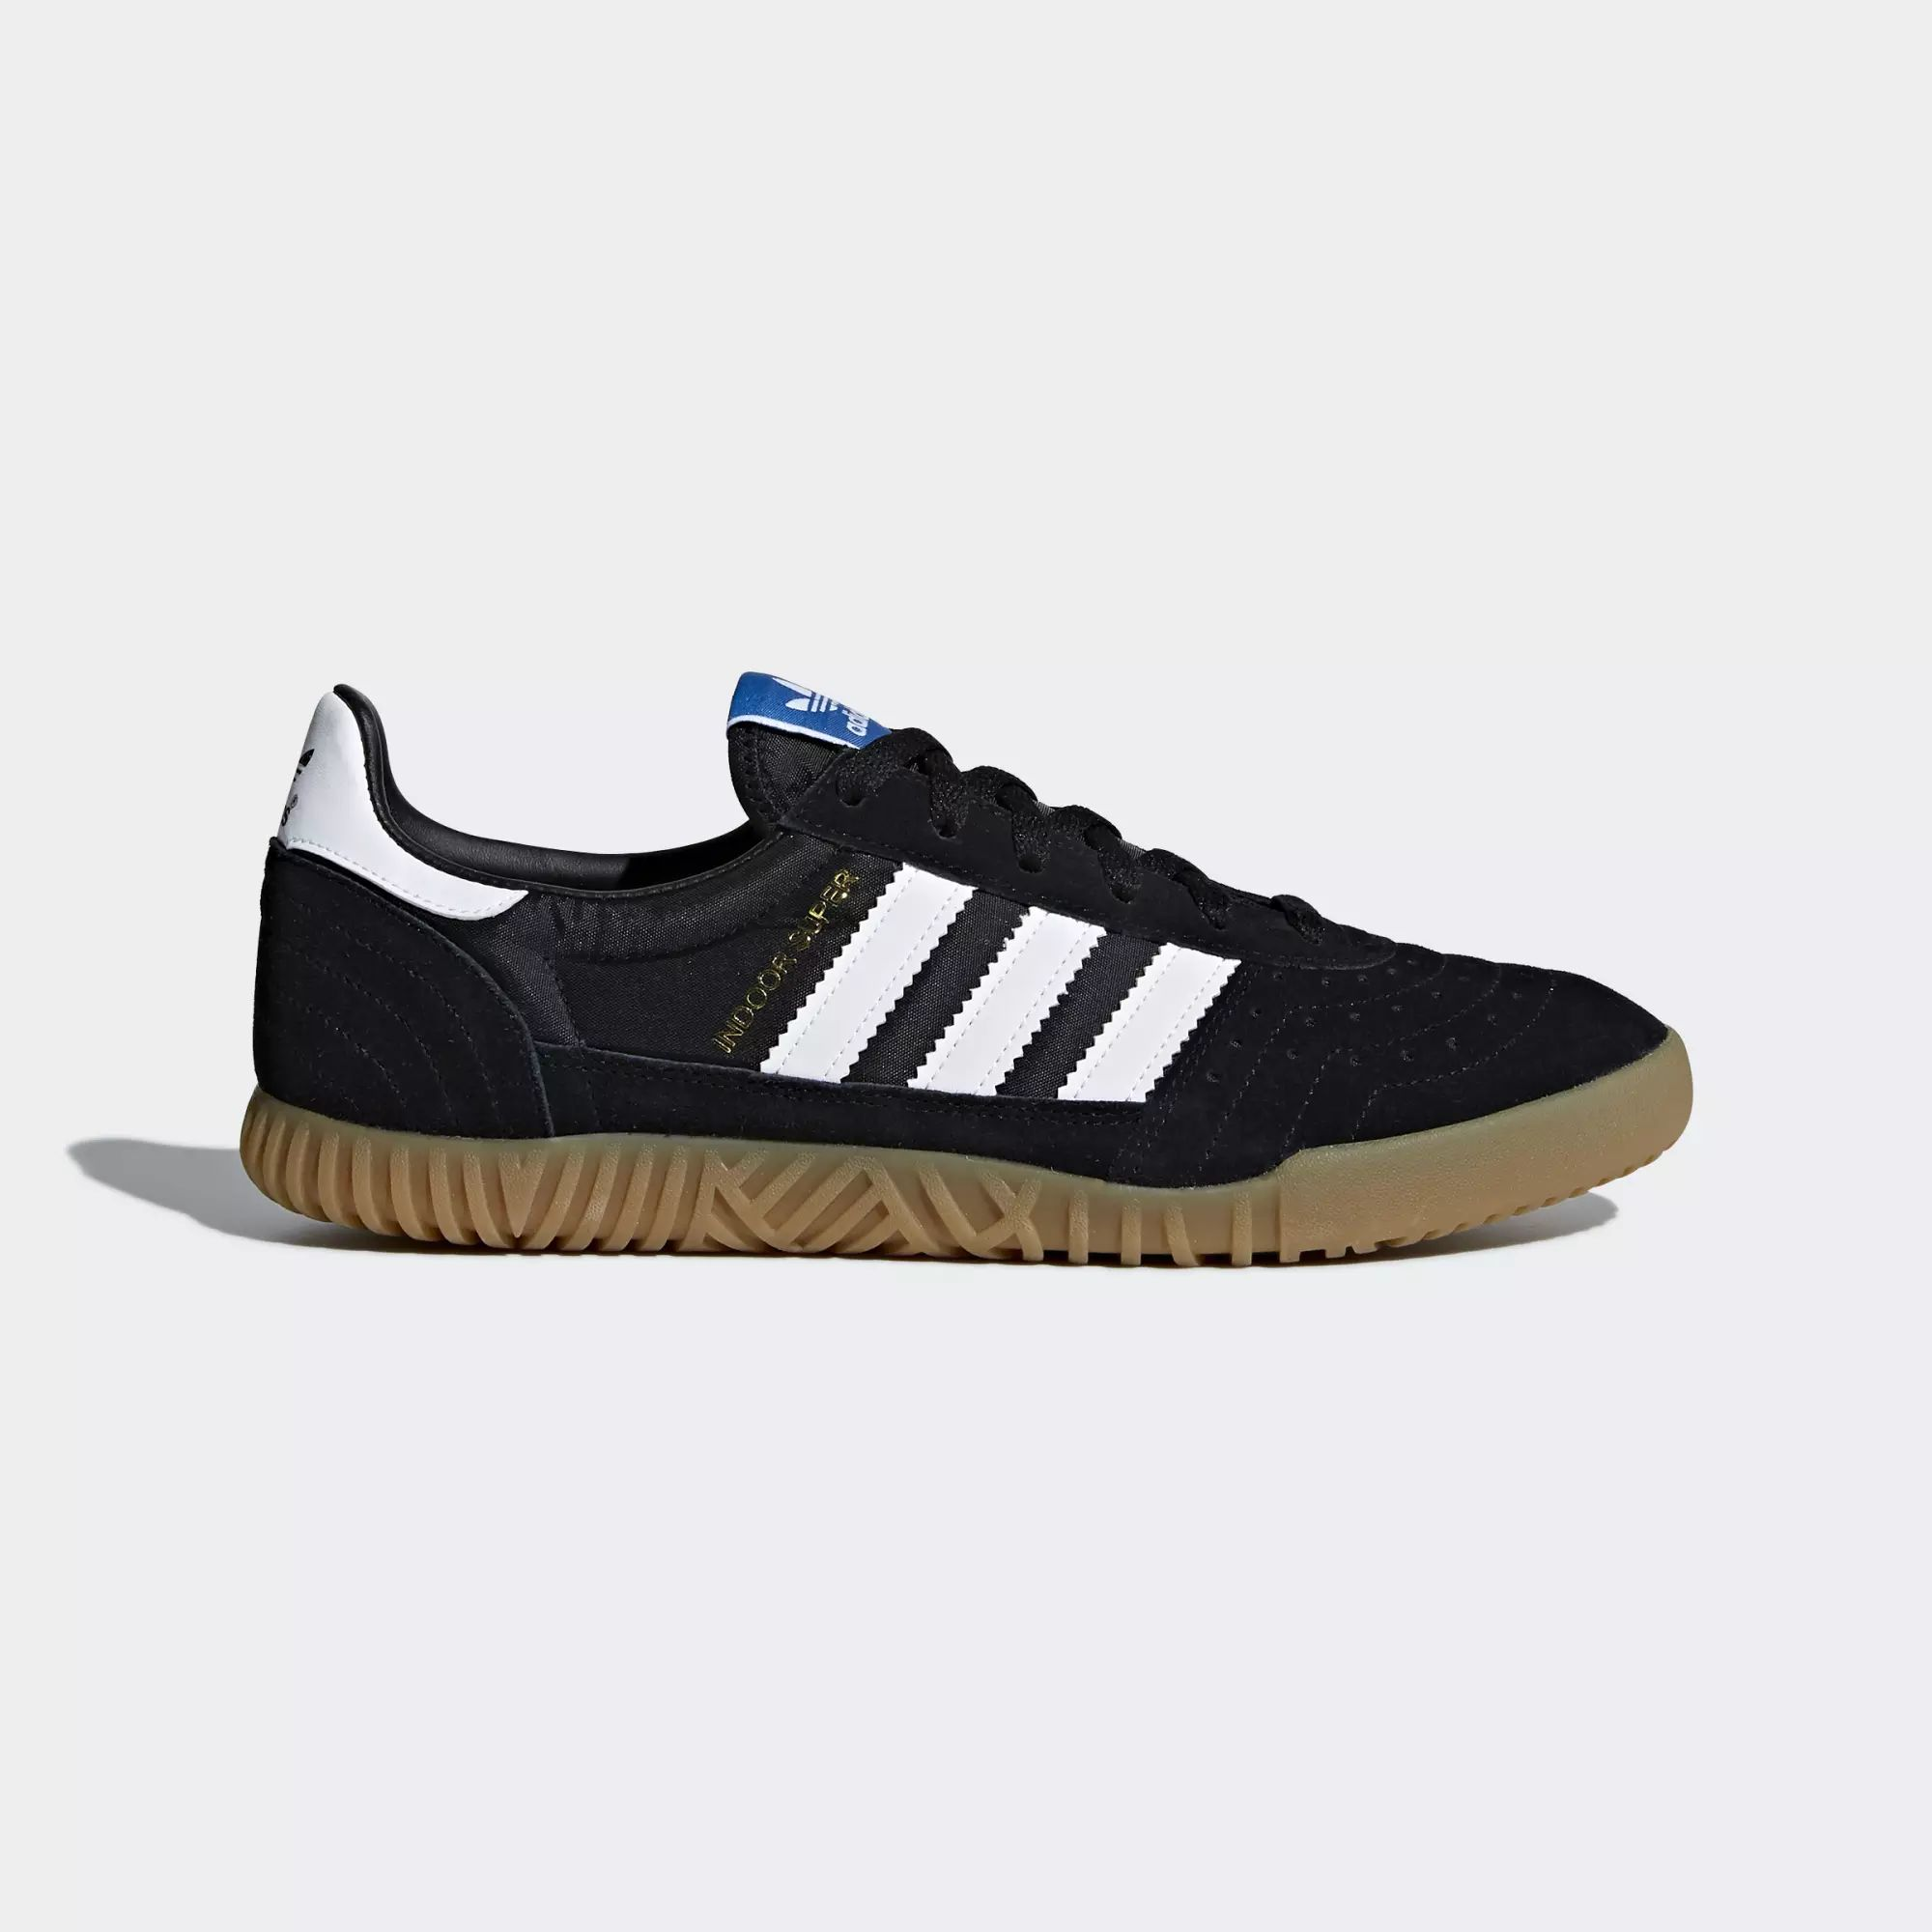 Adidas Indoor Super Shoes - Core Black / Ftwr White / Gum